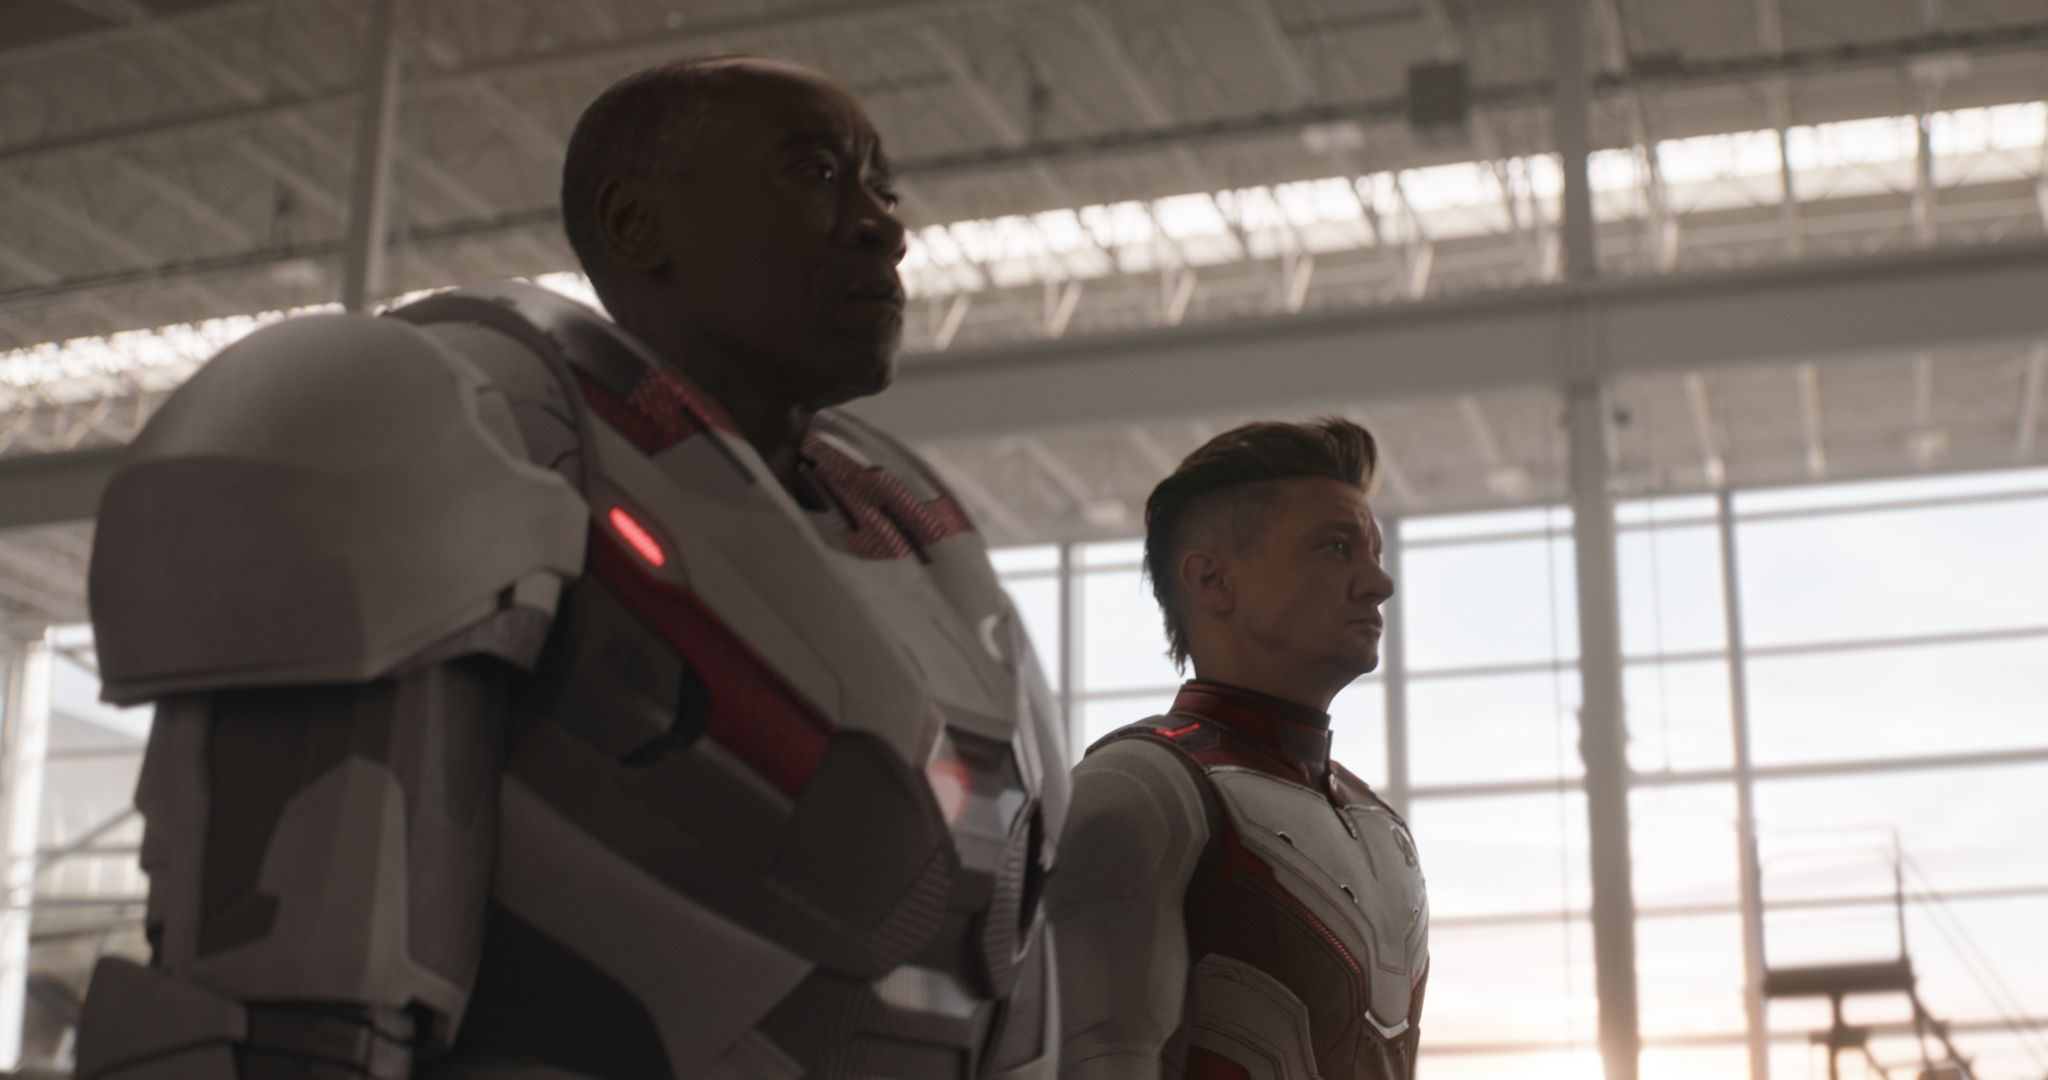 Avengers: Endgame headed for $1 billion box office earnings